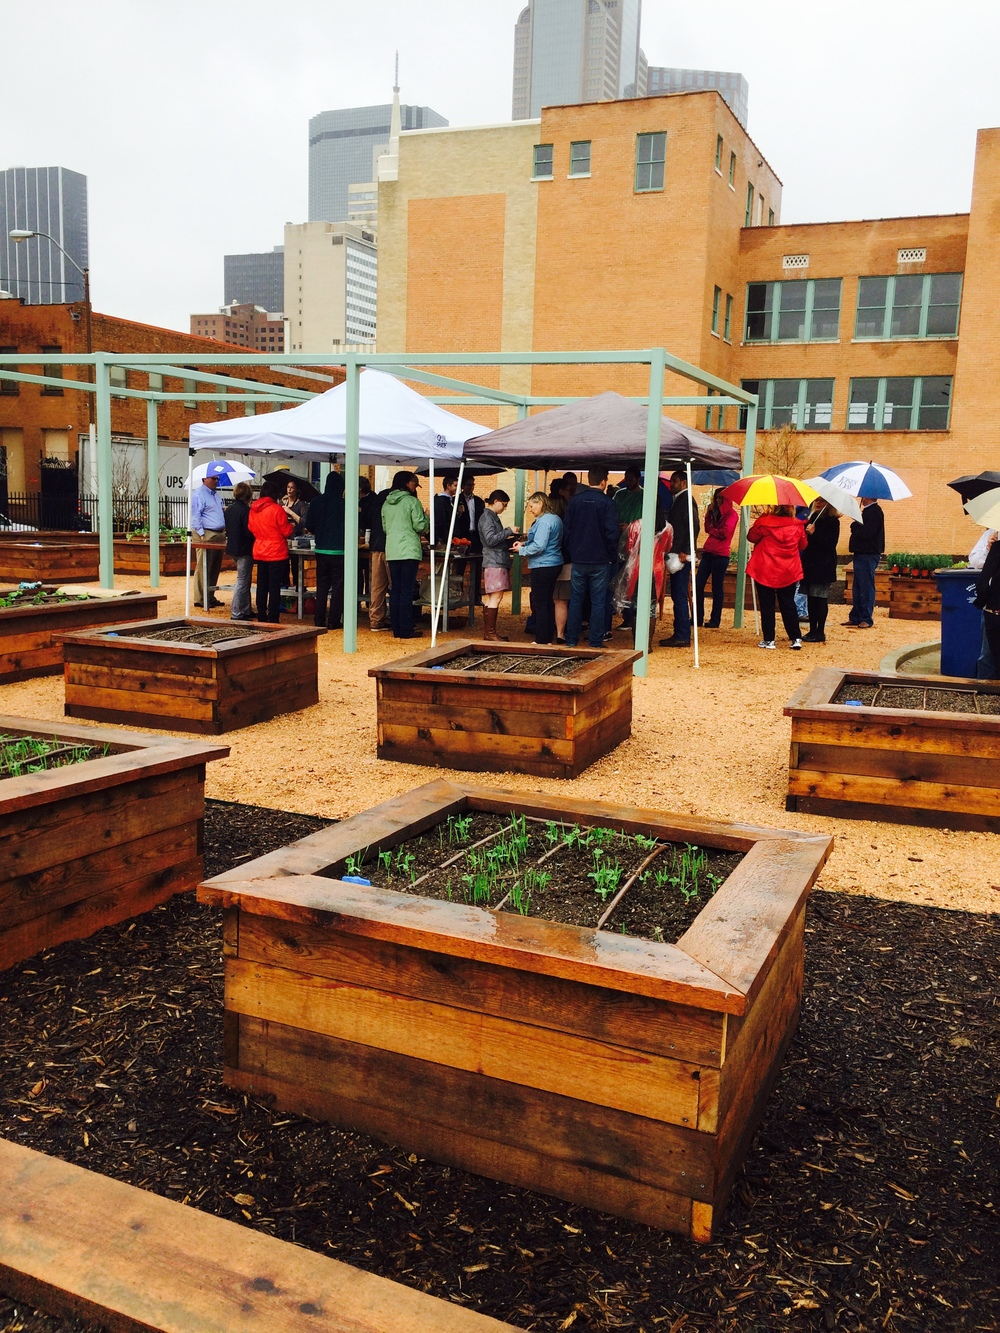 The community garden is the backyard of historic 508 Park.